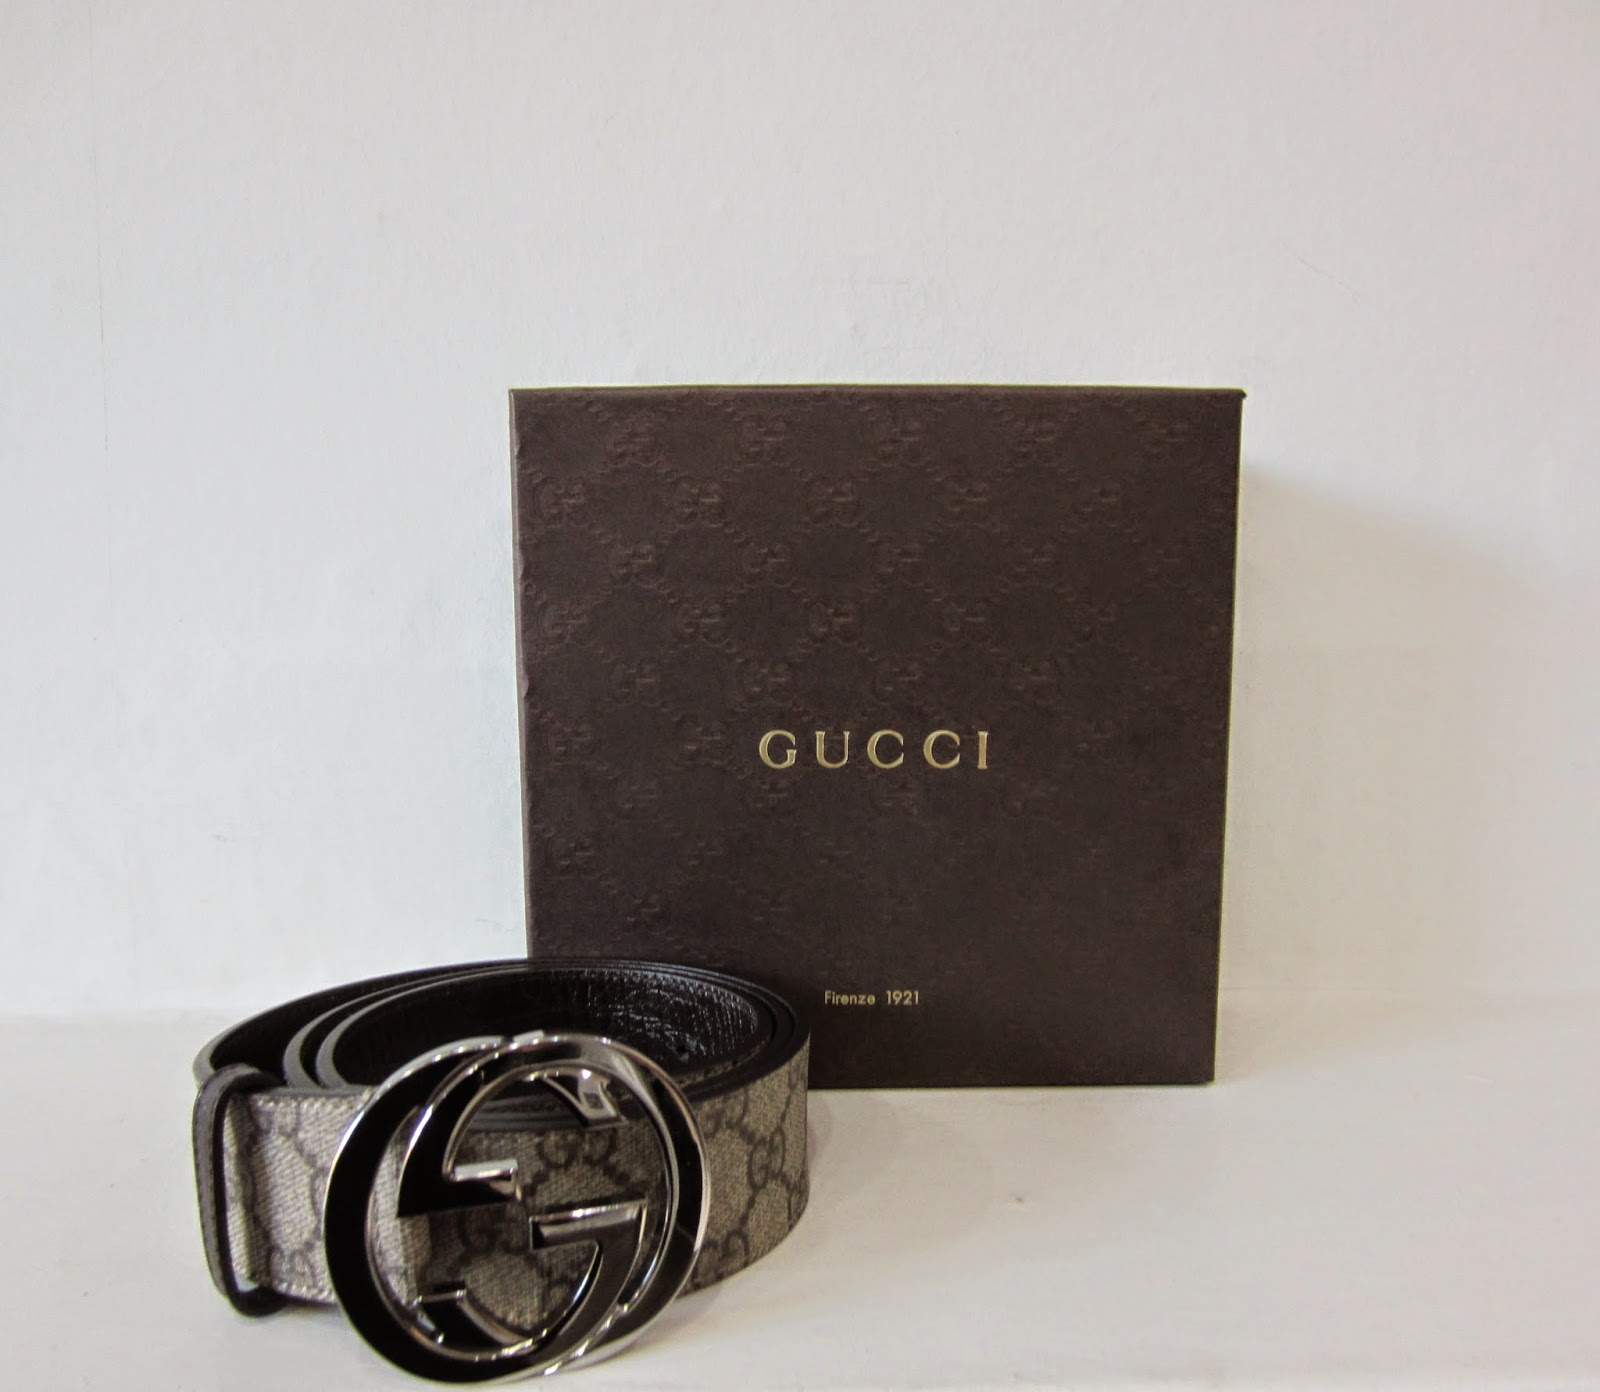 Gucci Monogrammed Belt with Box